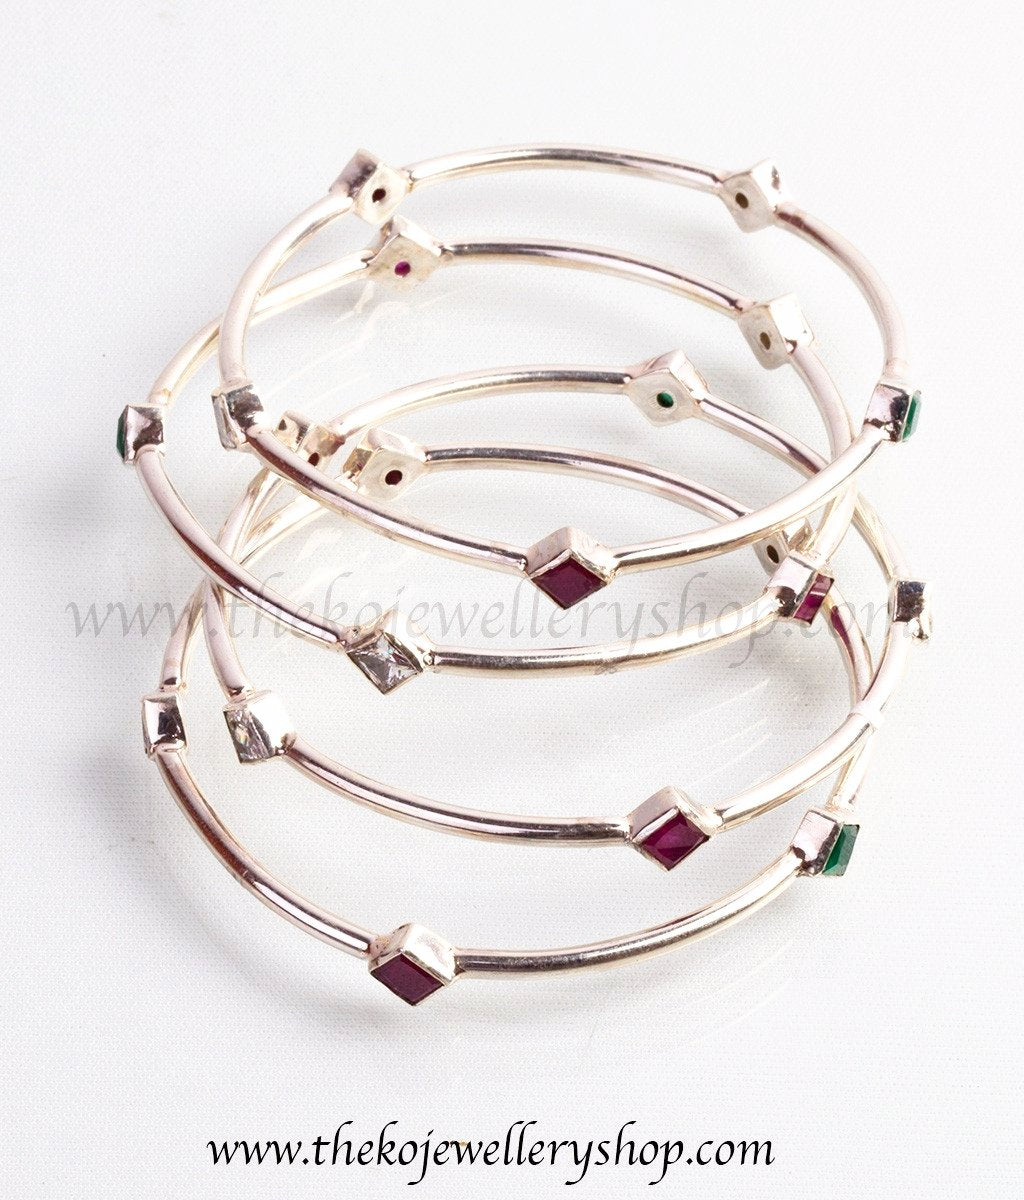 a ark bangle jewellery d star of free with upon diamond gold delivery for silver high bangles jewellers cost low plated picture and wish quality